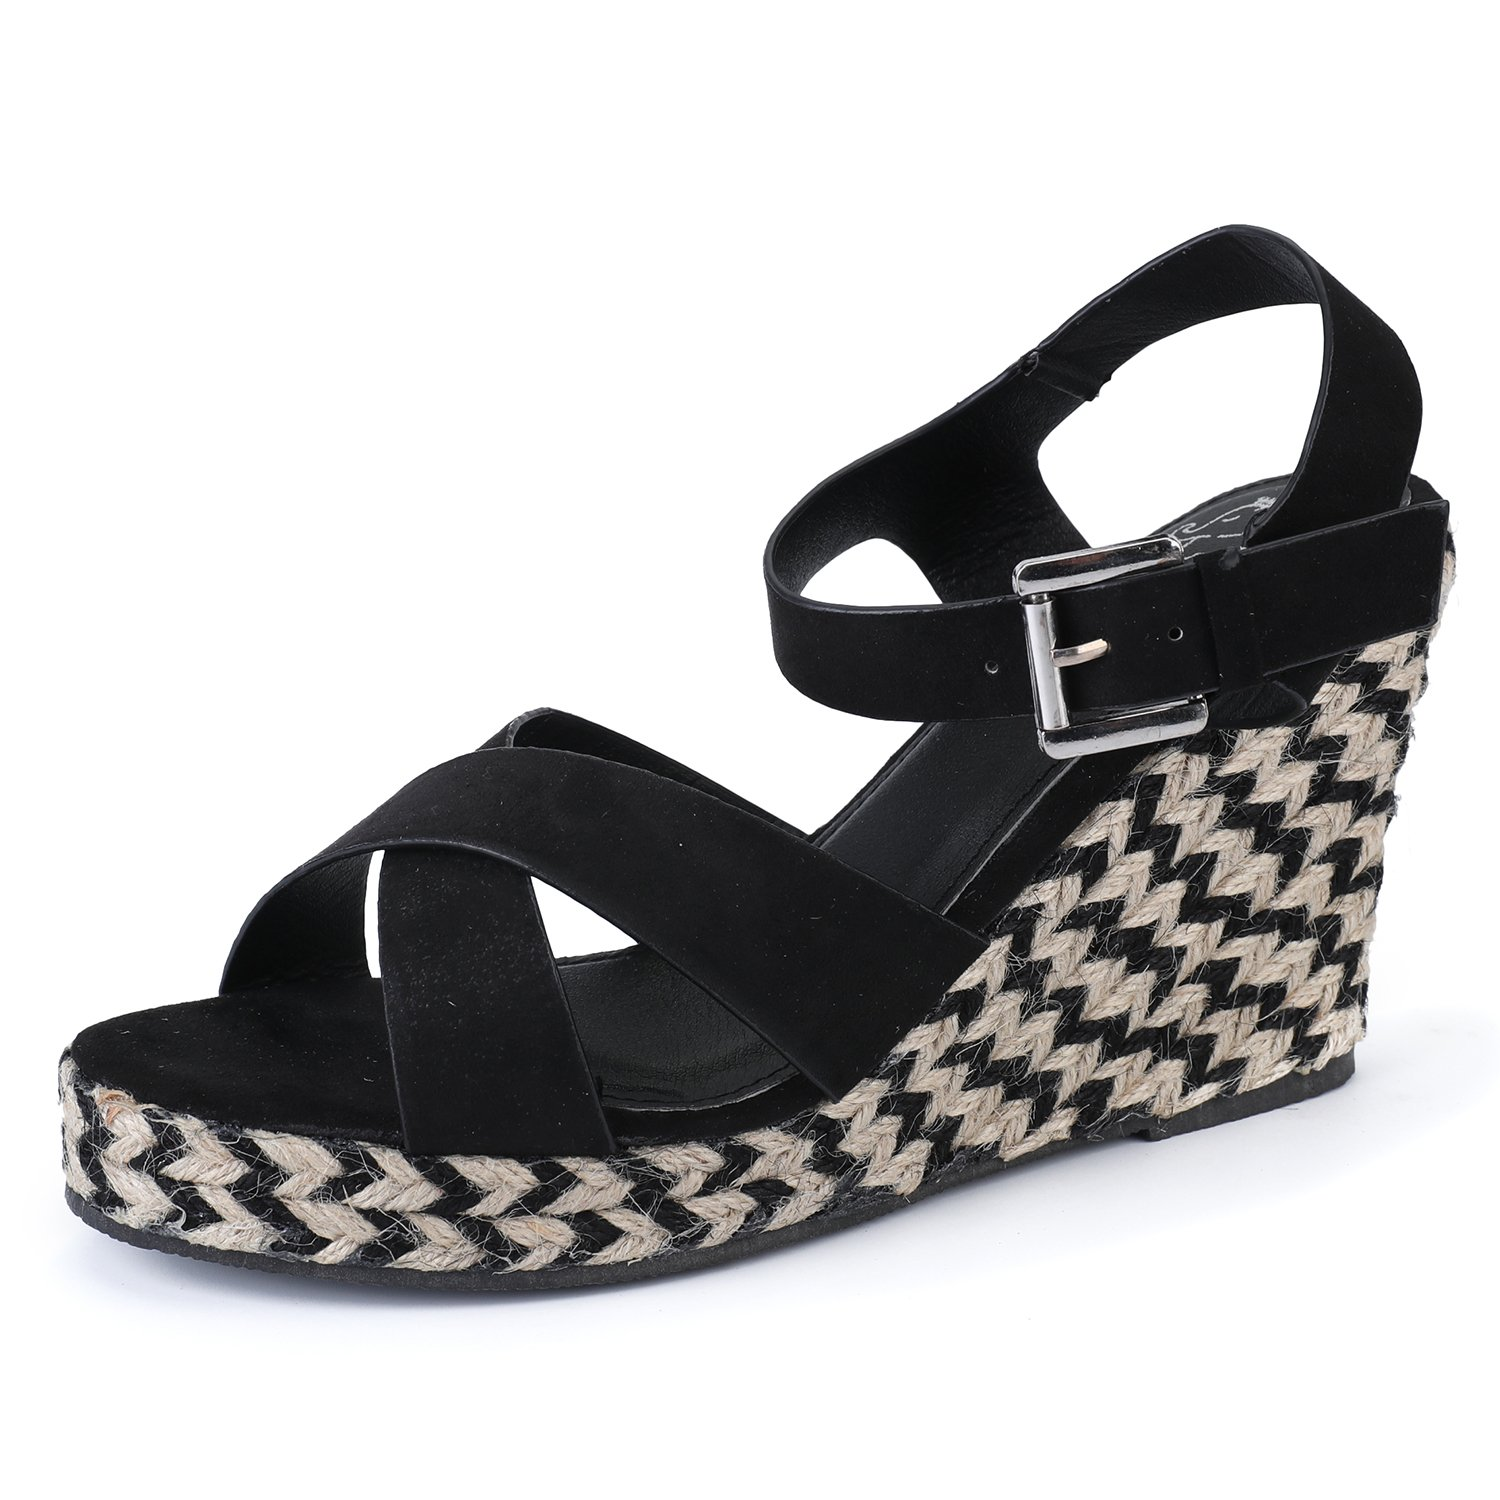 0ea91d7cb5e Alexis Leroy Women s Open Toe Cross Strap Wedge Espadrille Sandals